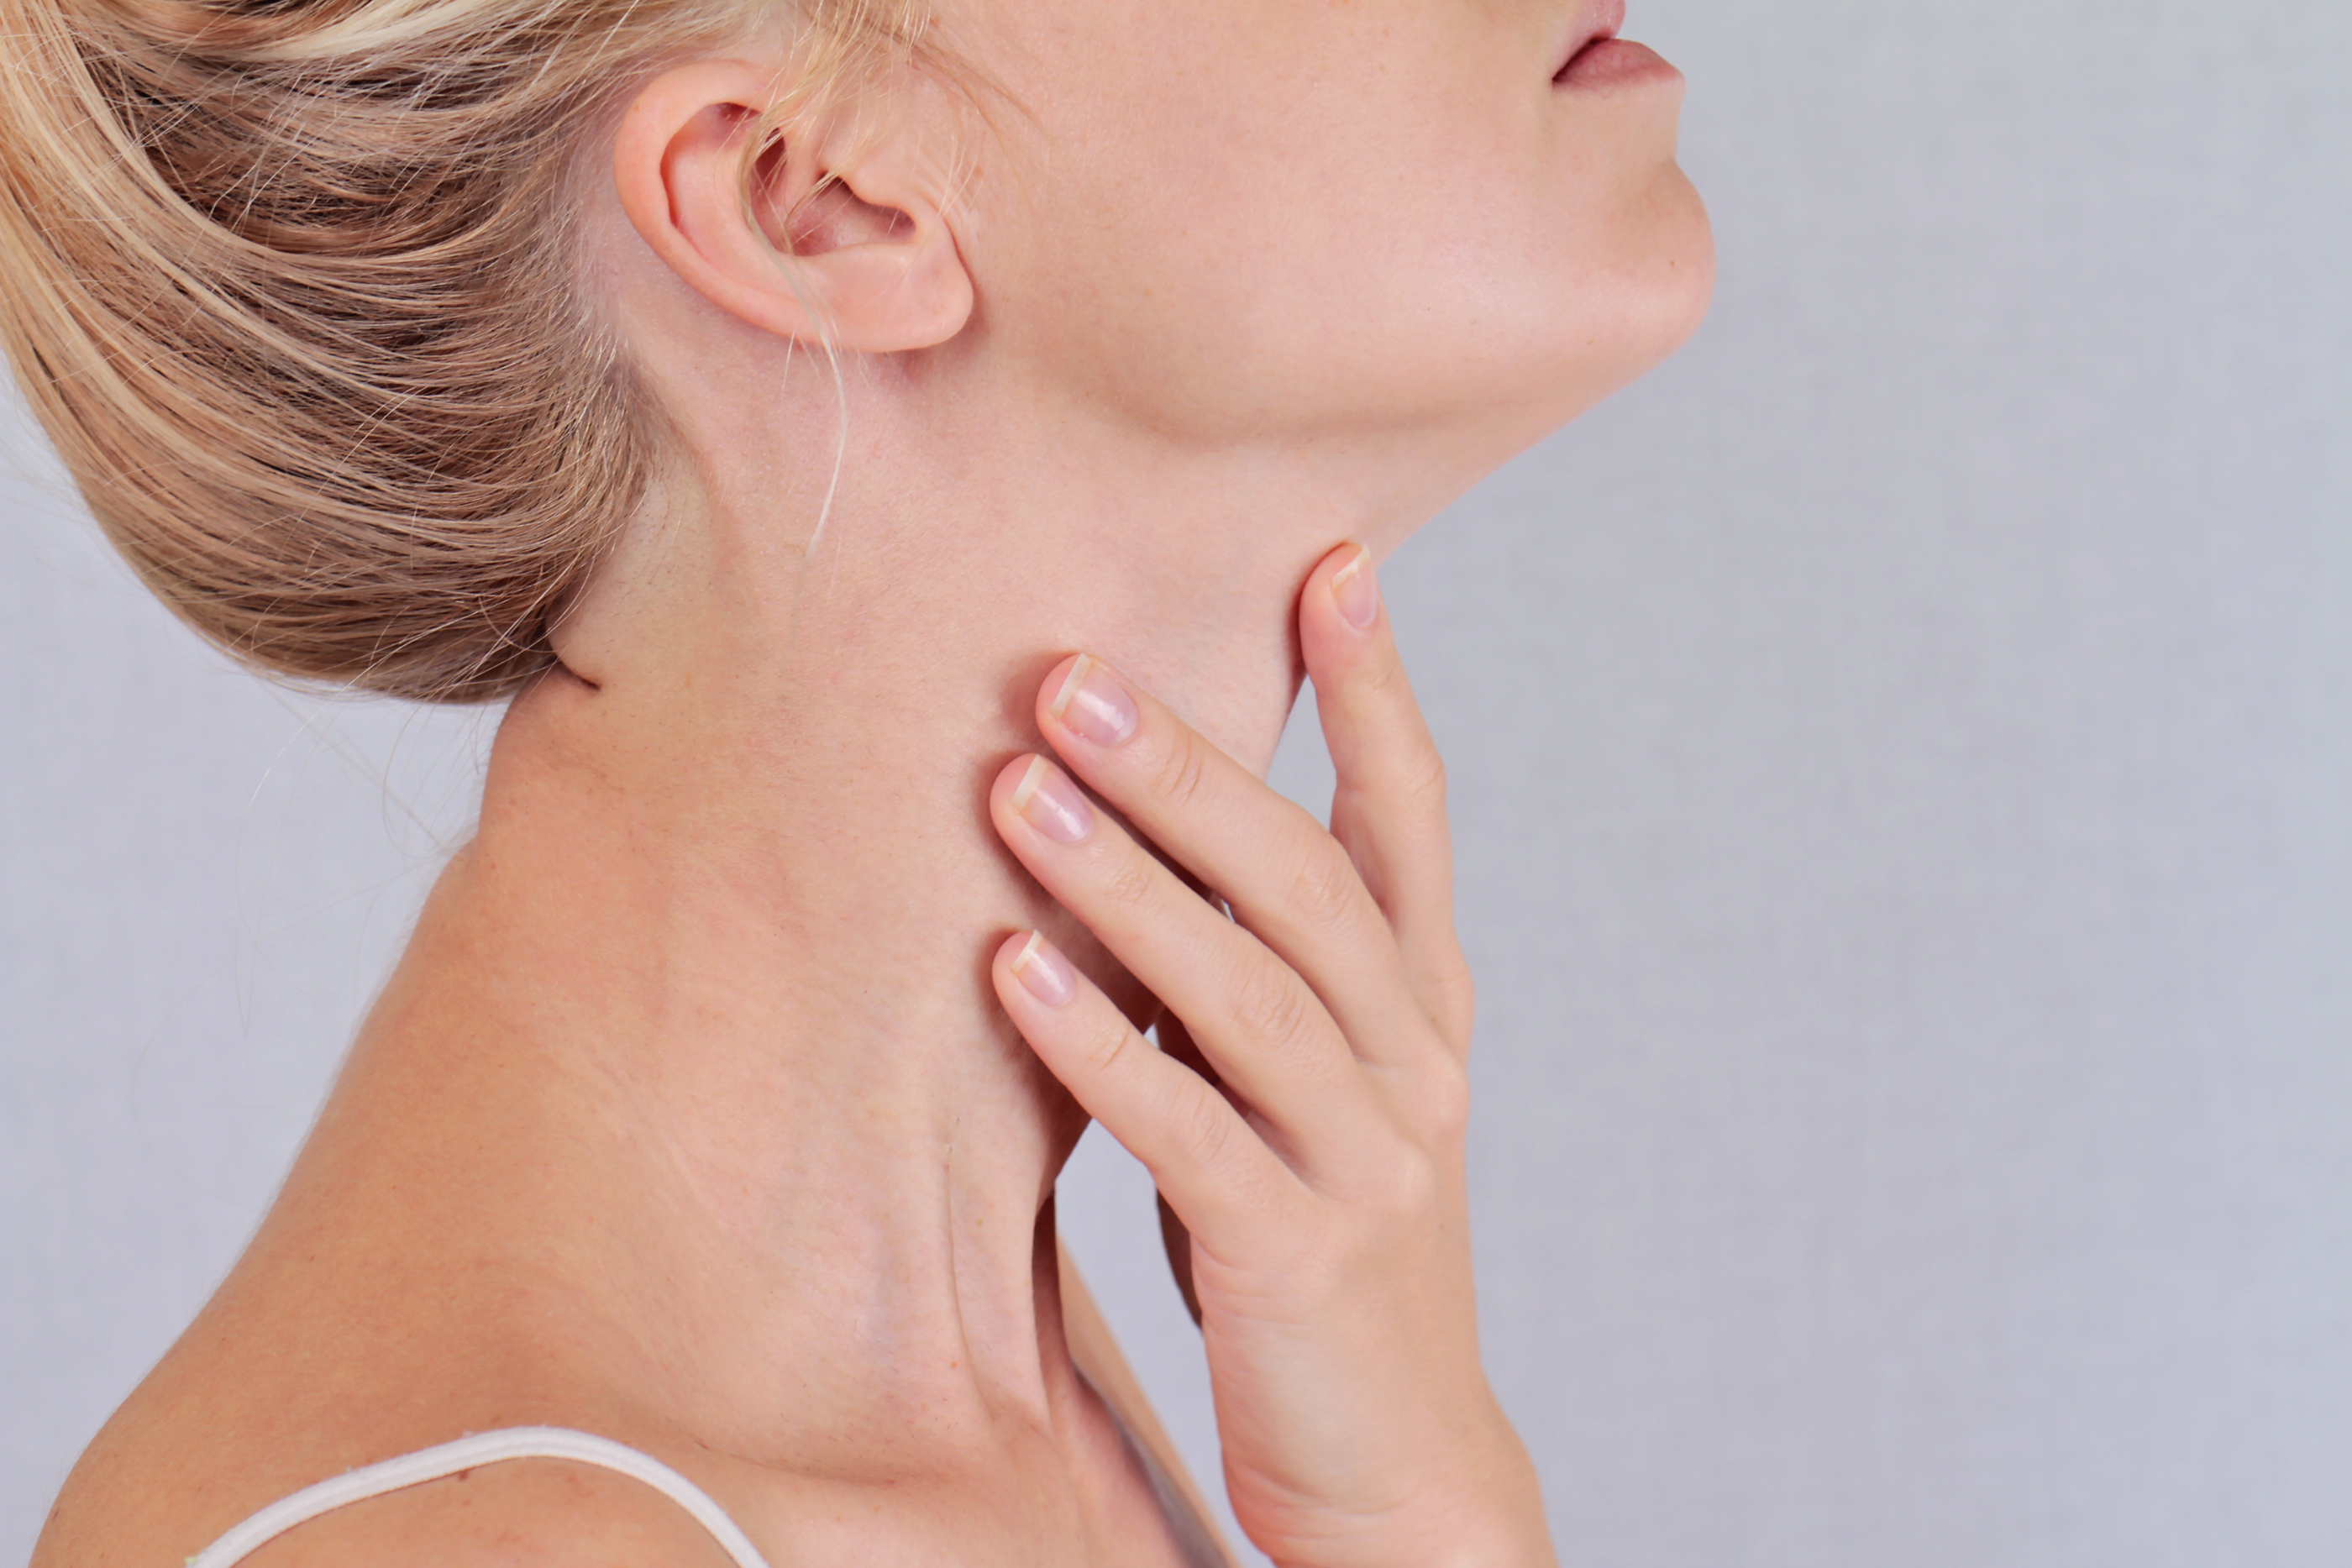 8 Tips for Treating Thyroid Problems Naturally